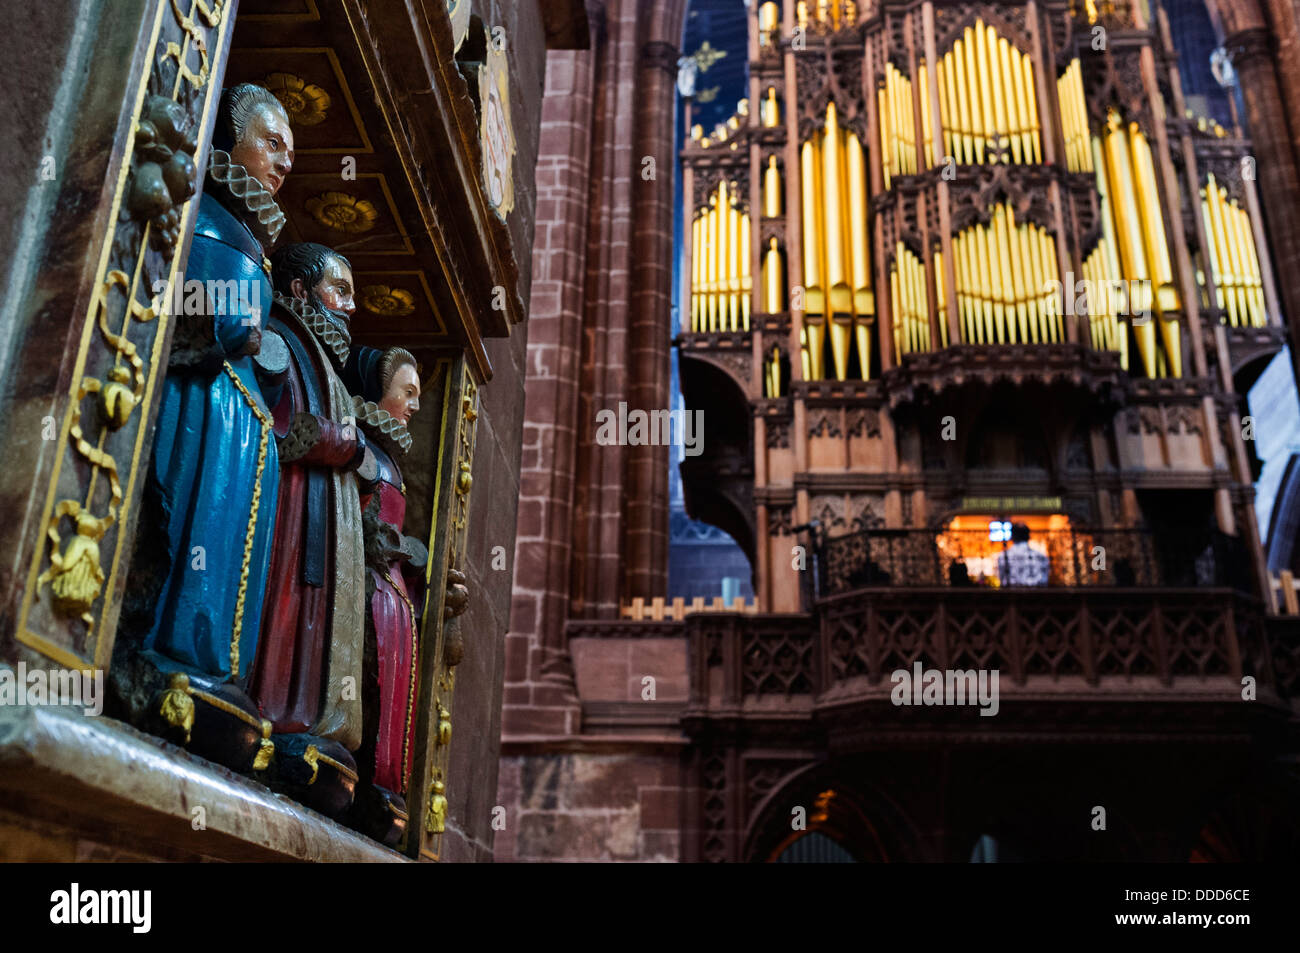 Chester cathedral monument to the wives of Thomas Greene, a mayor of the city in 1565, Cheshire, England, UK - Stock Image